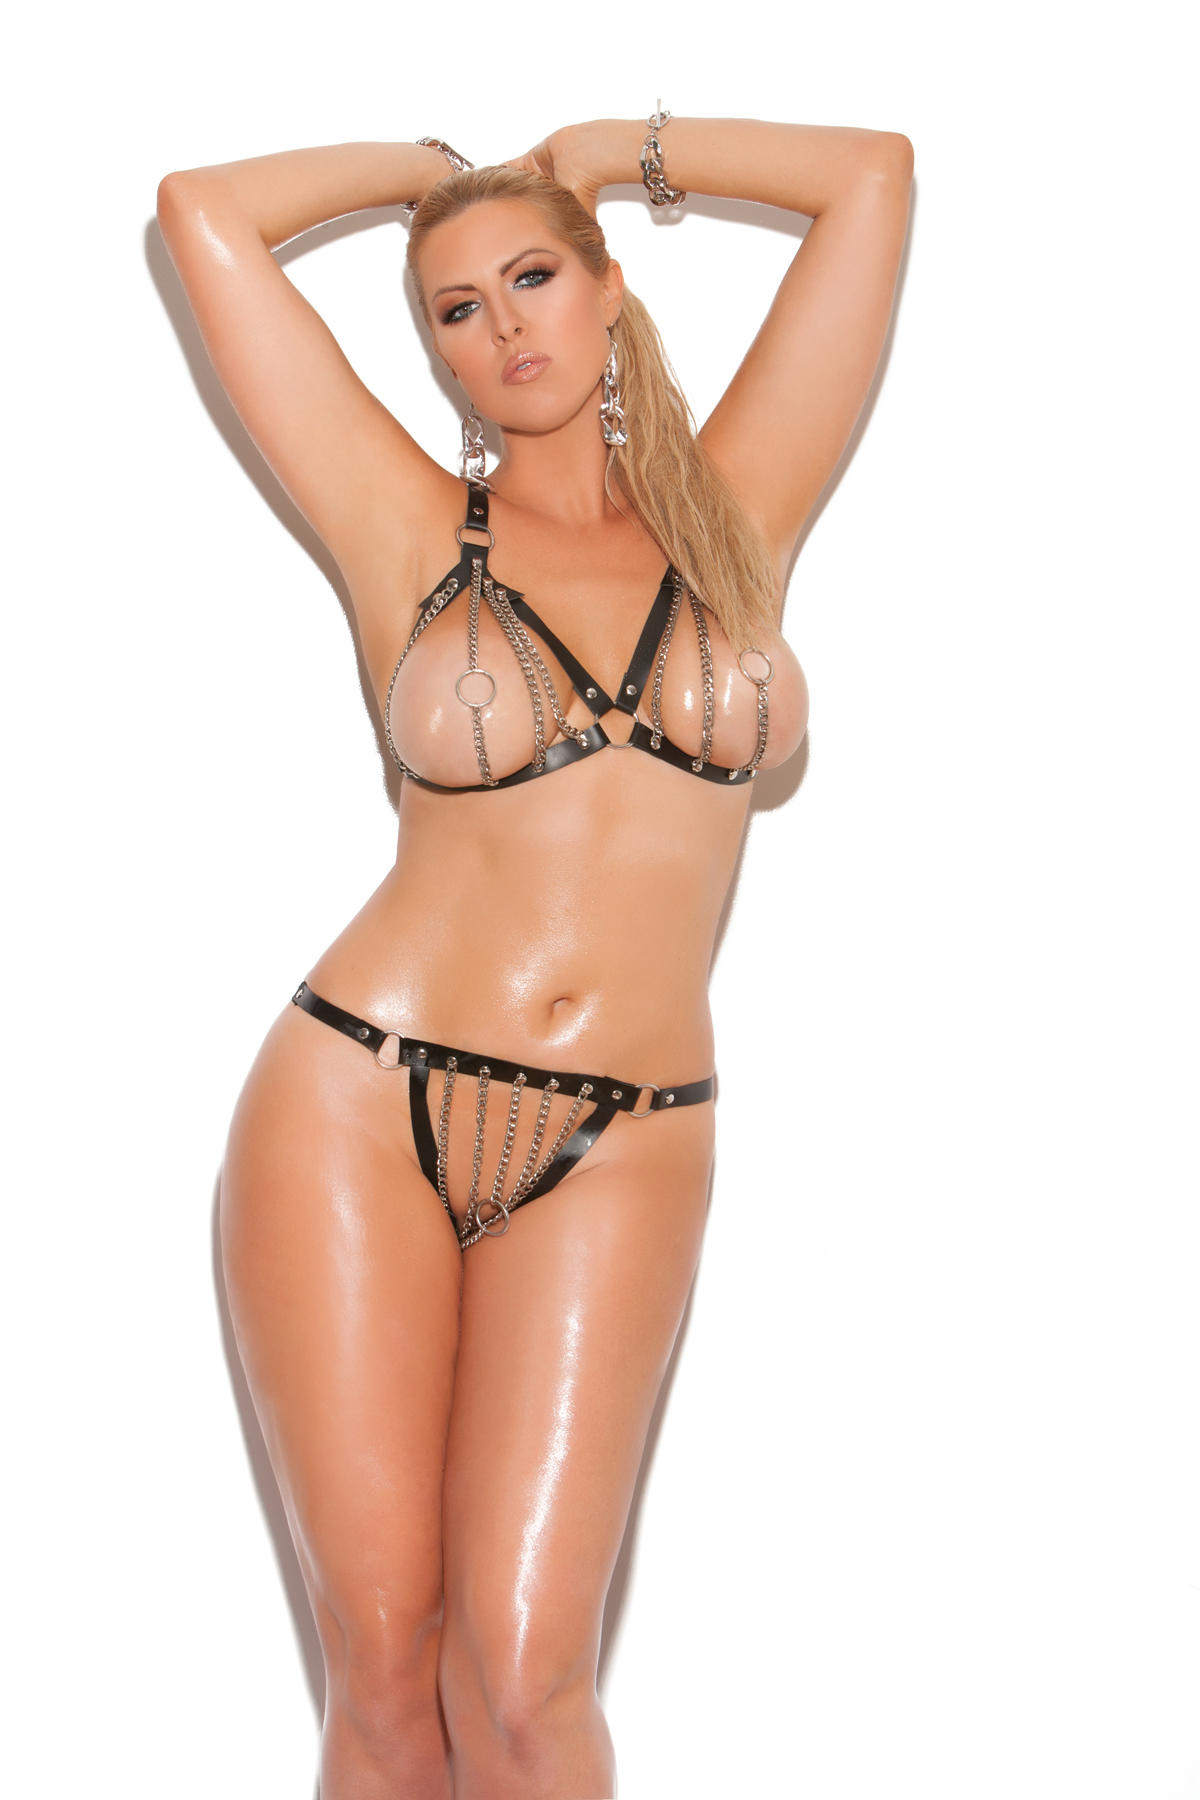 Plus Size Leather Lingerie, Sexy Plus Size Leather Lingerie